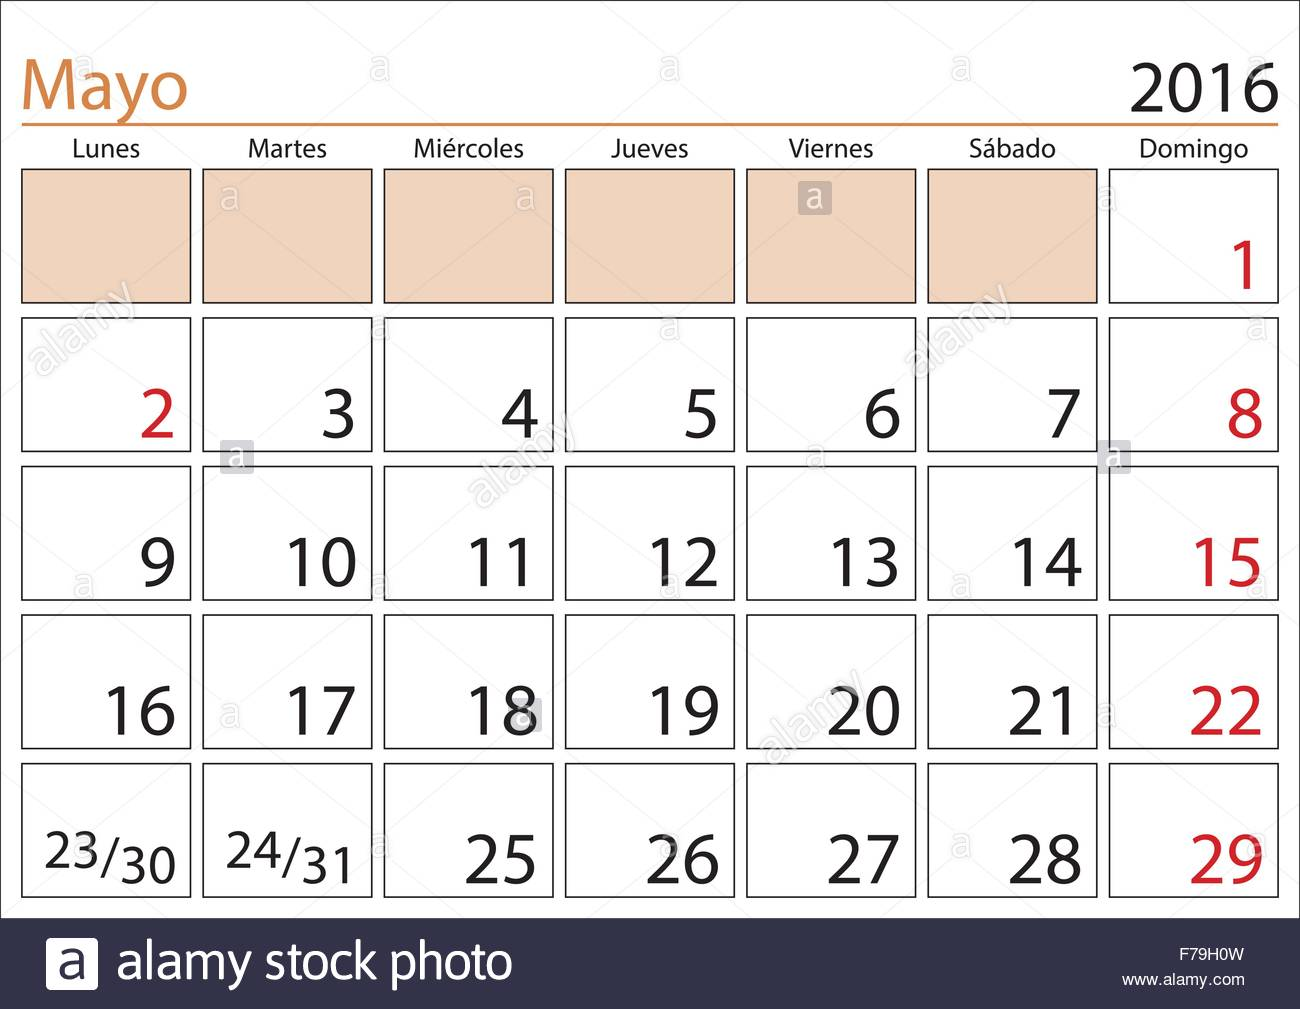 May month in a year 2016 calendar in spanish. Mayo 2016. Calendario ...